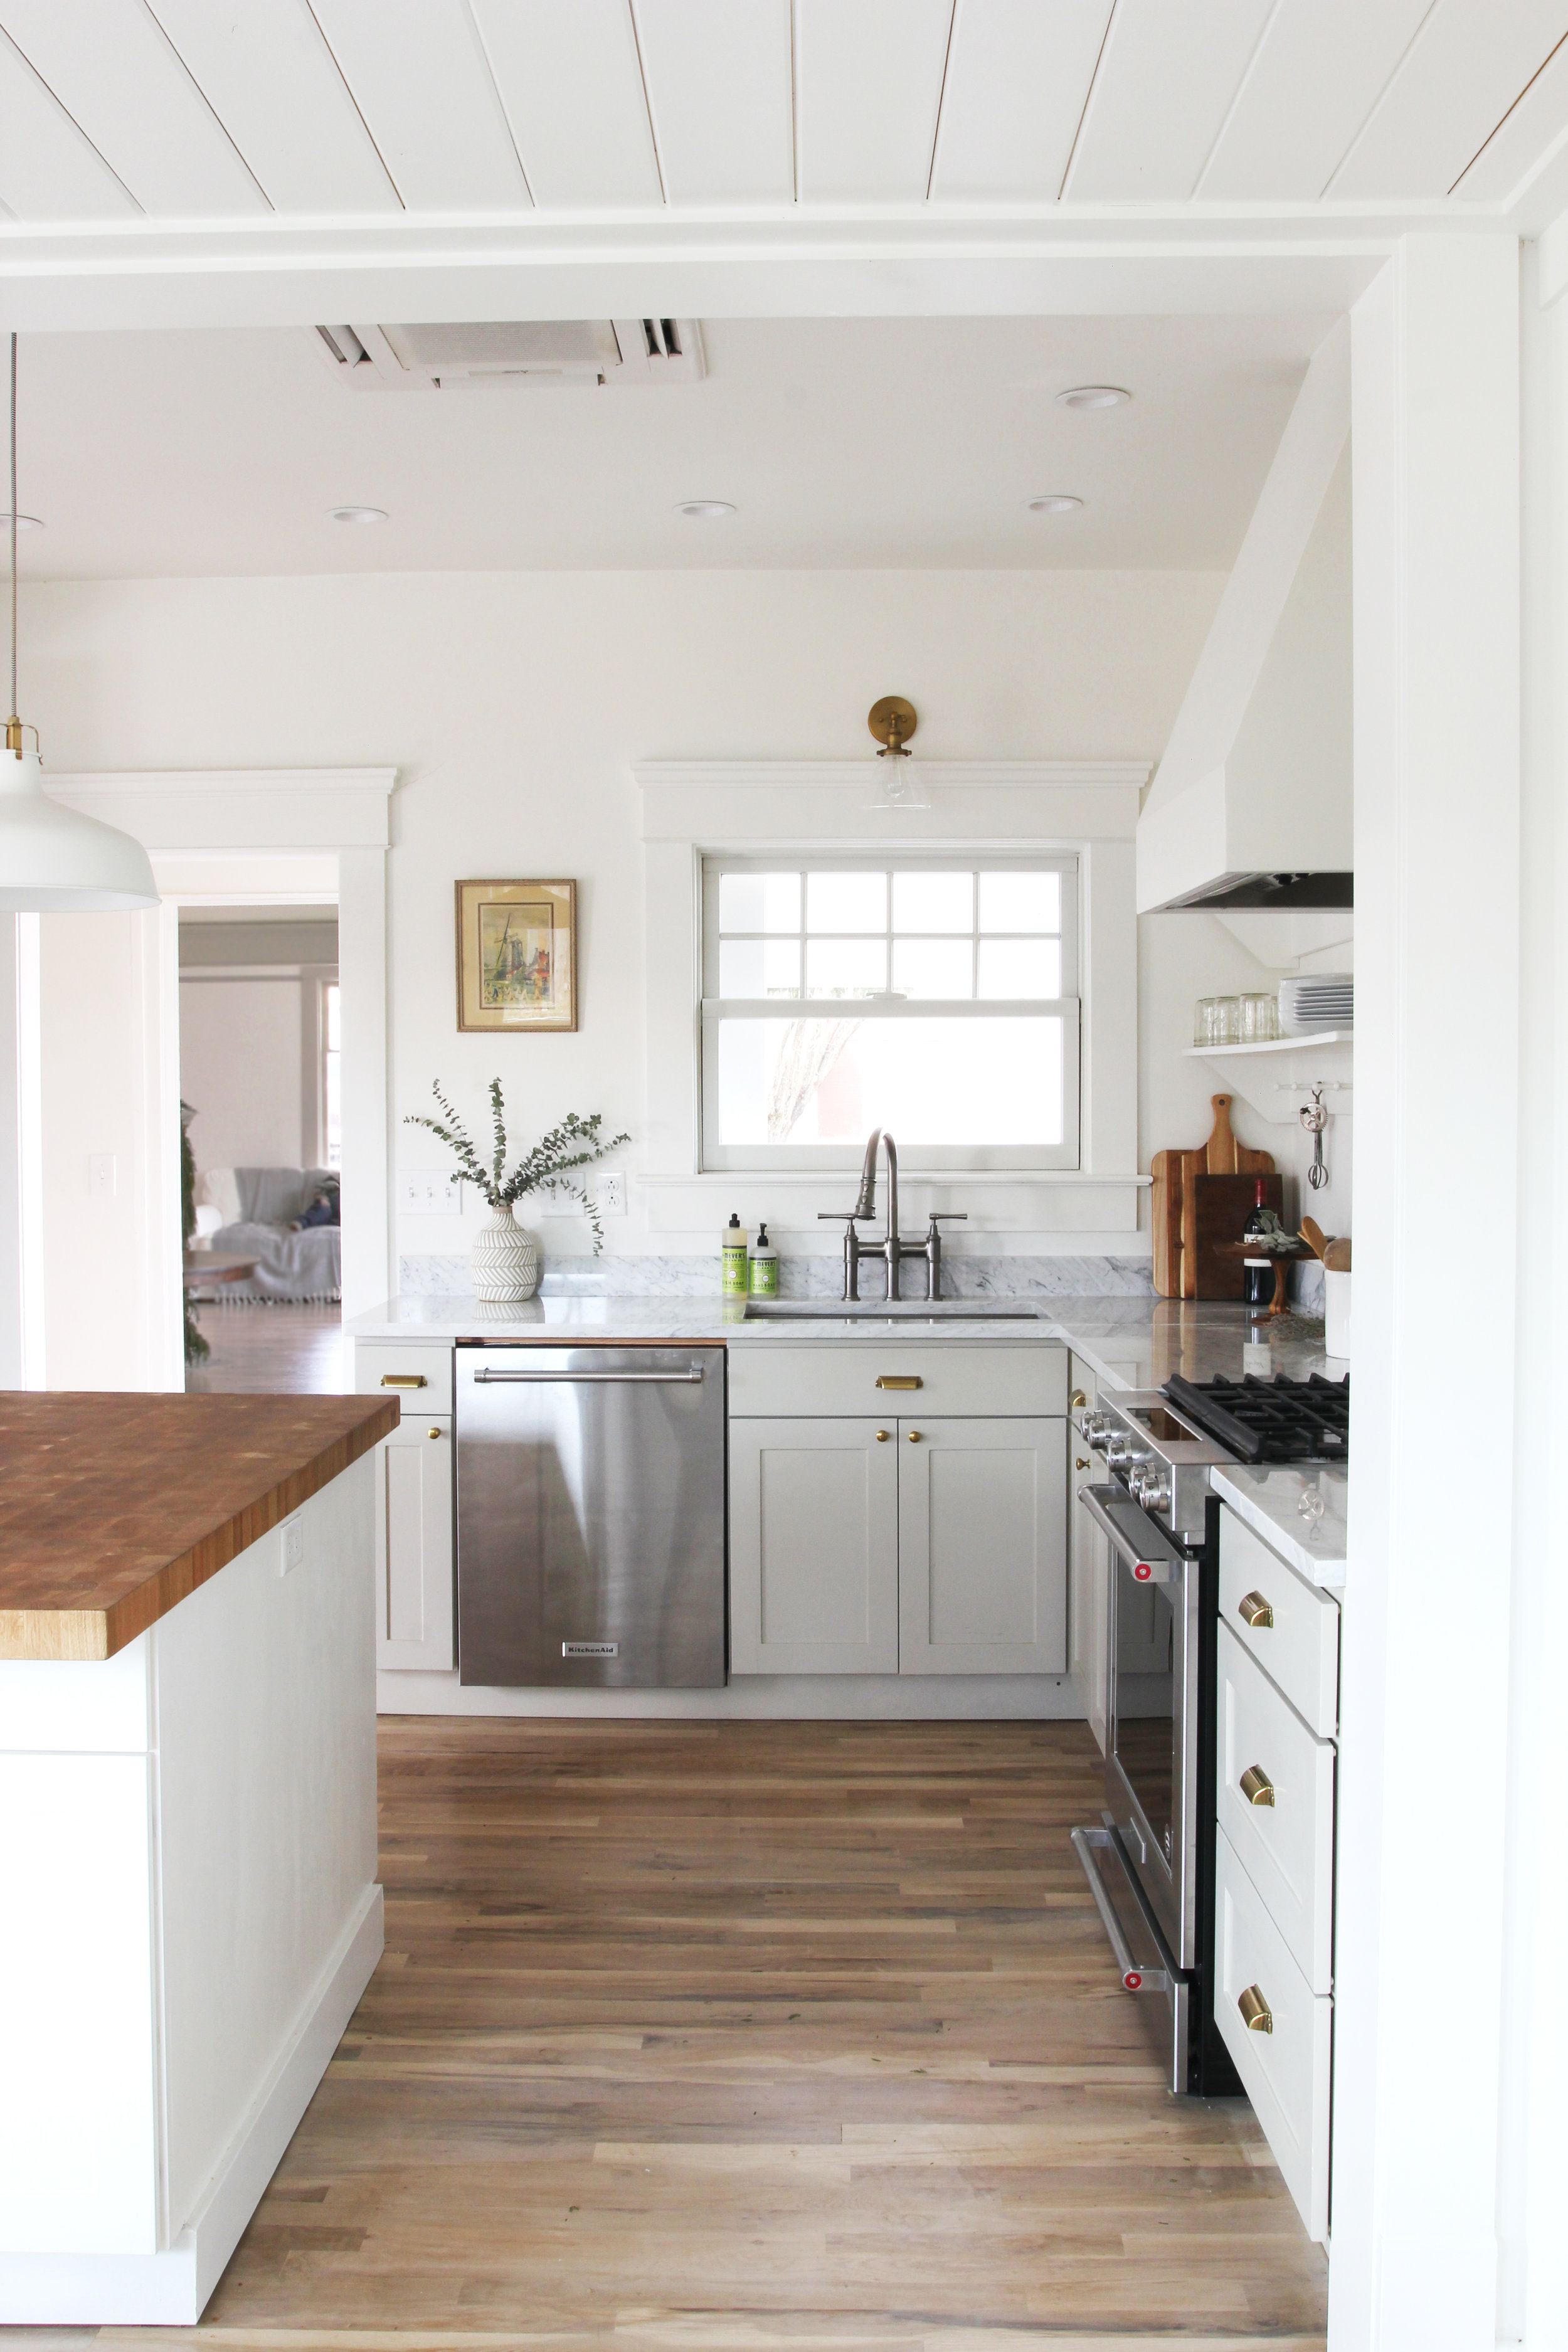 The Grit and Polish - Porch Kitchen Sink Wide.jpg